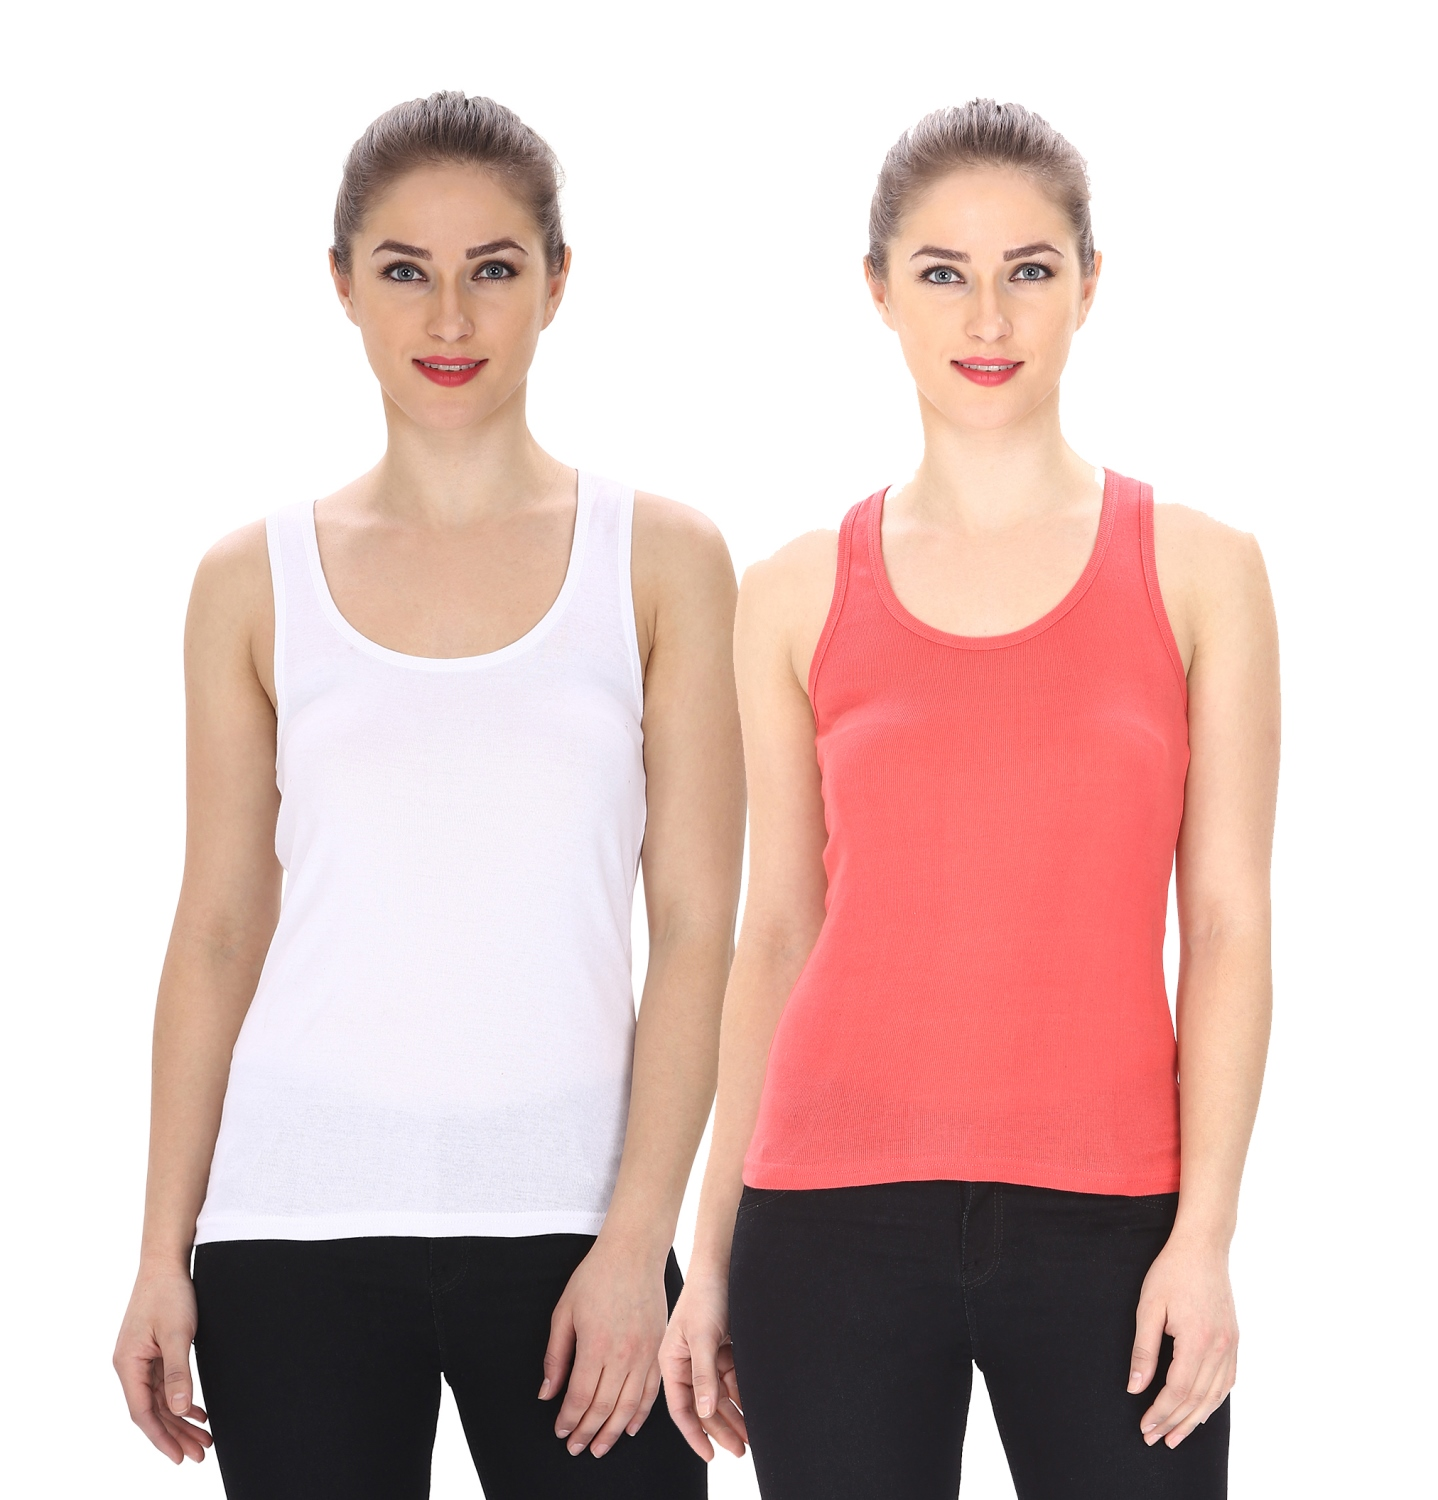 Friskers Multicolor Casual Cotton Plain Tank Tops  Pack of 2